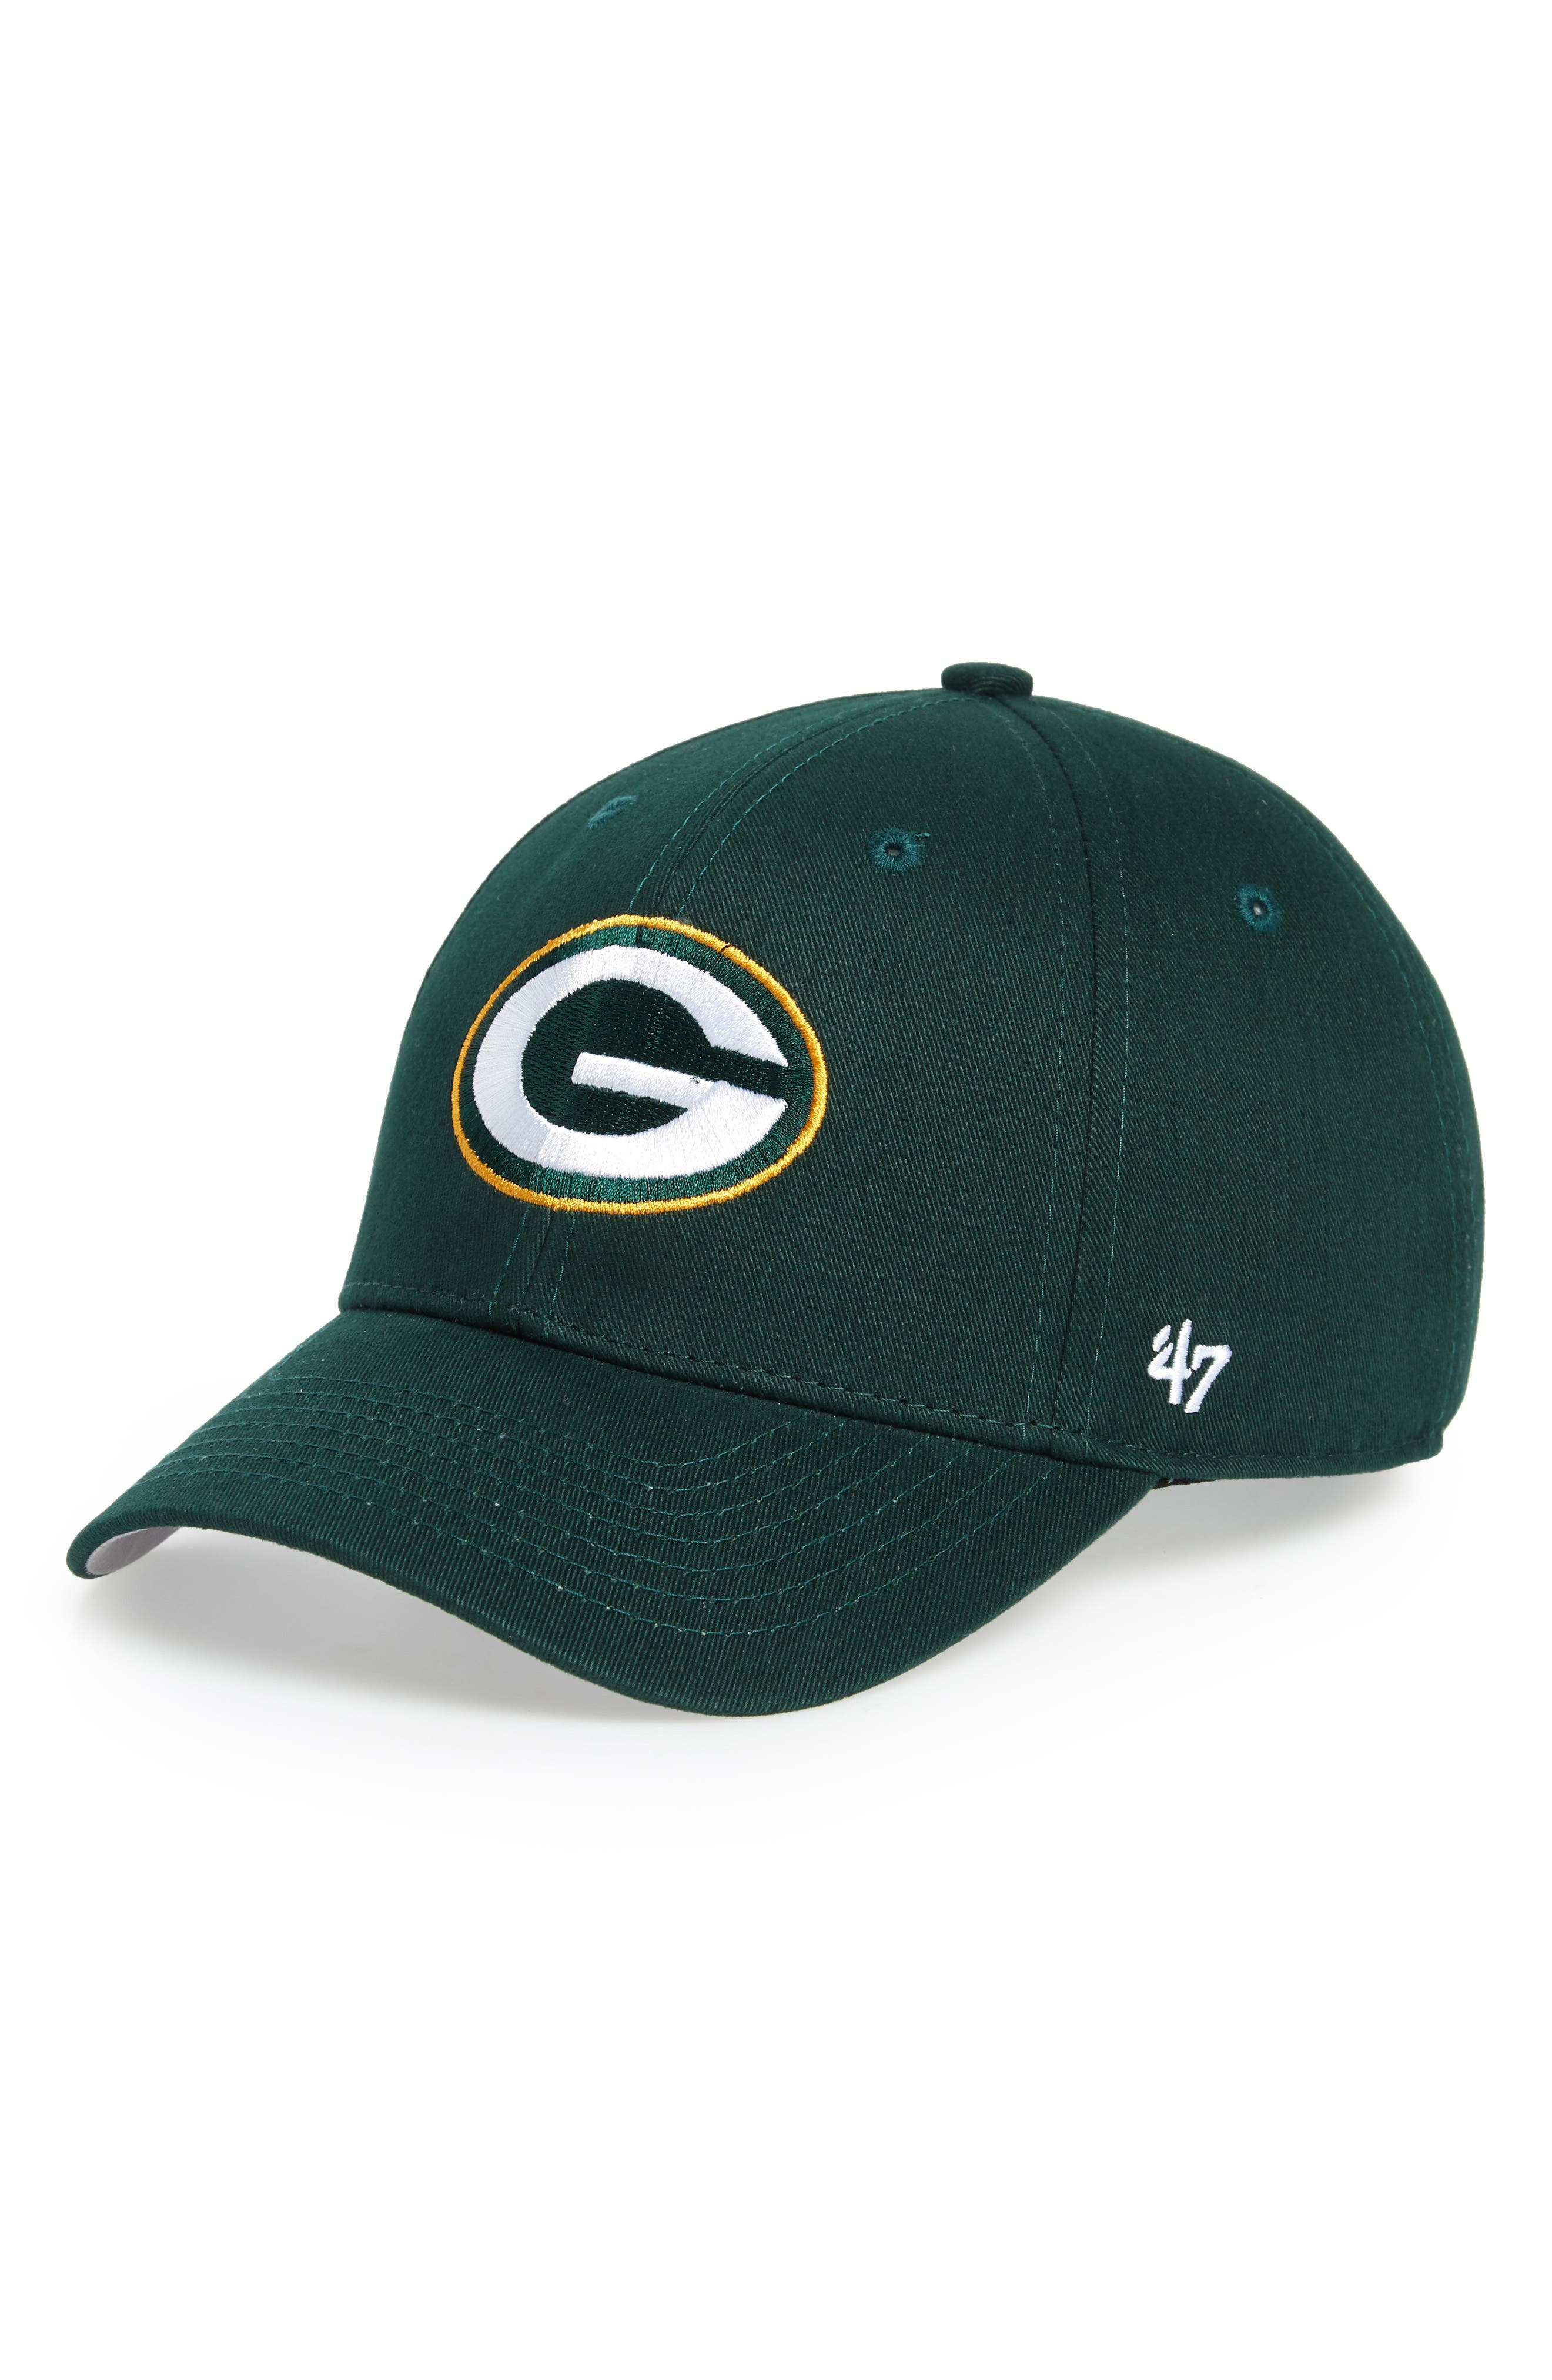 Boys 47 Nfl Mvp Green Bay Packers Baseball Cap